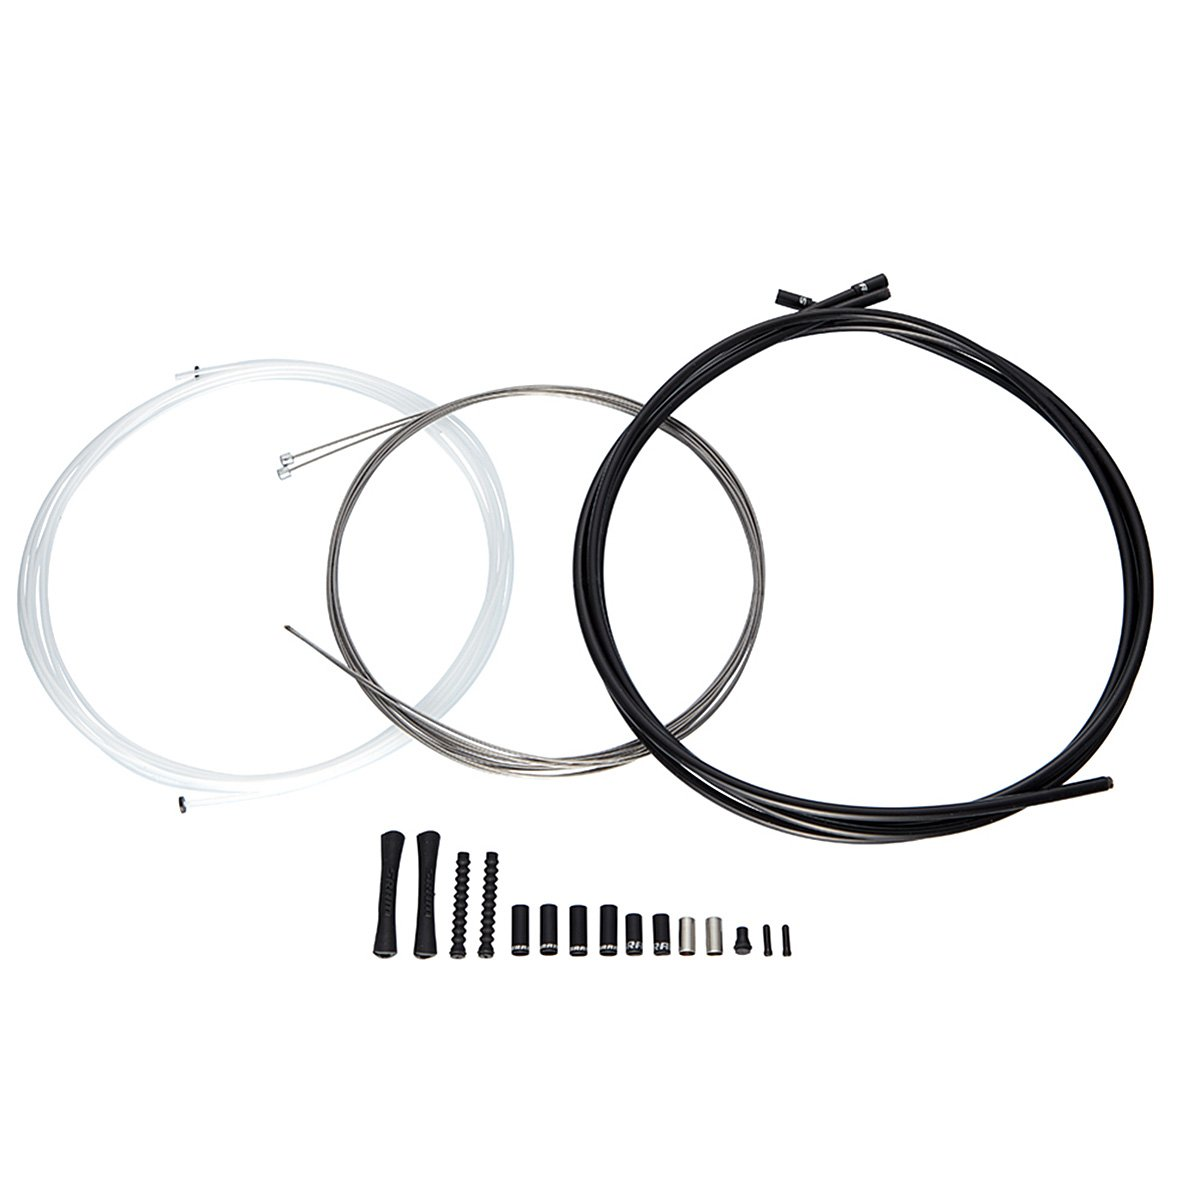 SRAM Slickwire Pro Shift Cable Kit, Black, 4mm by SRAM